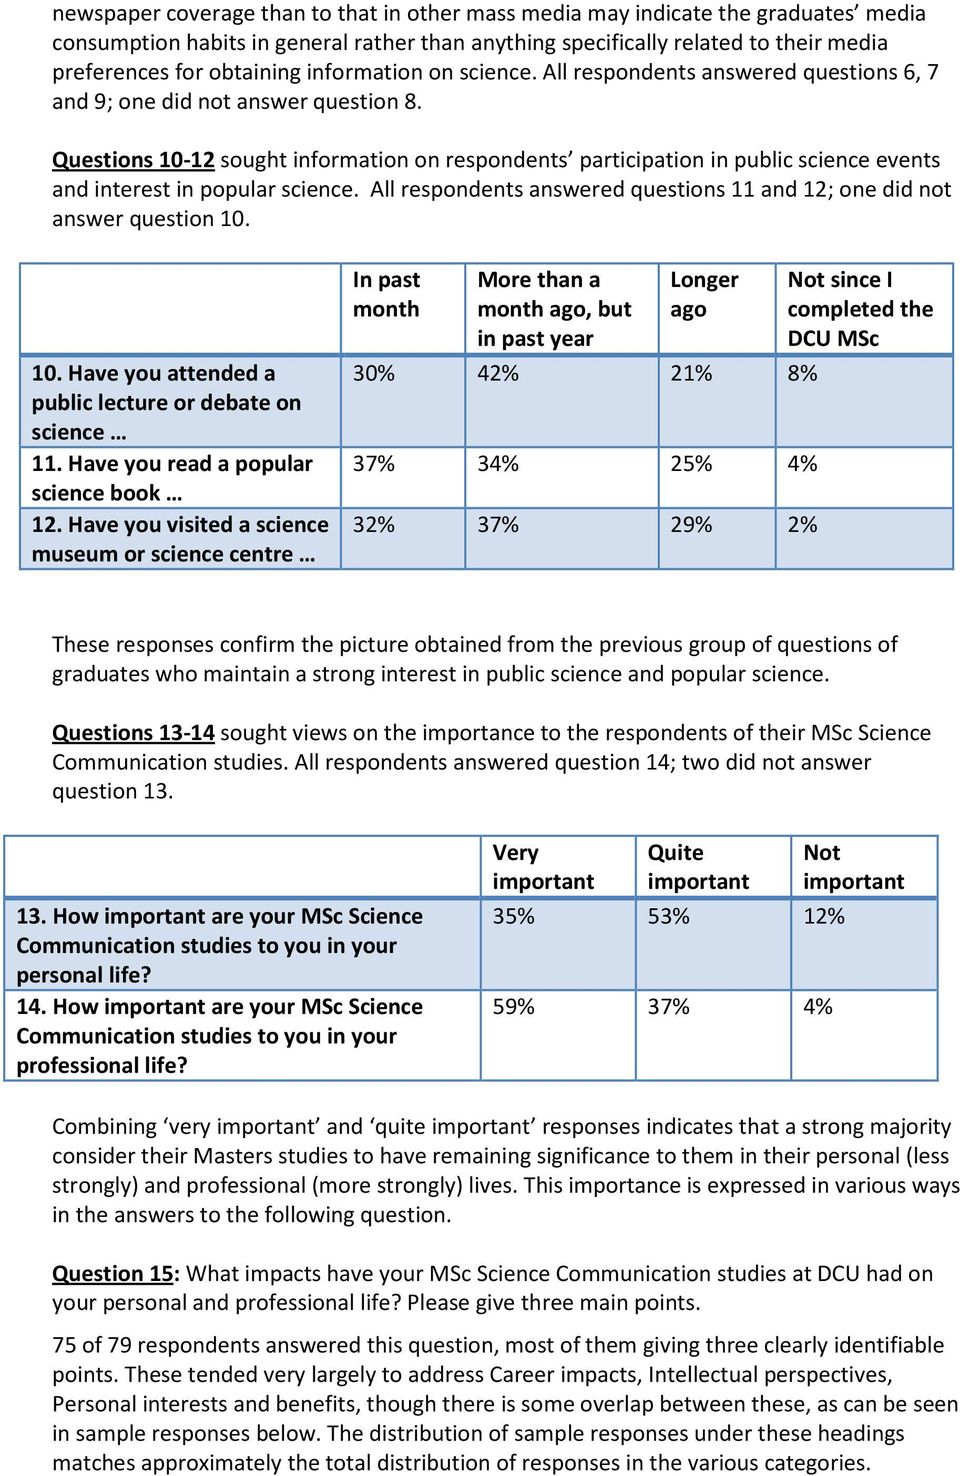 Questions 10-12 sought information on respondents participation in public science events and interest in popular science. All respondents answered questions 11 and 12; one did not answer question 10.